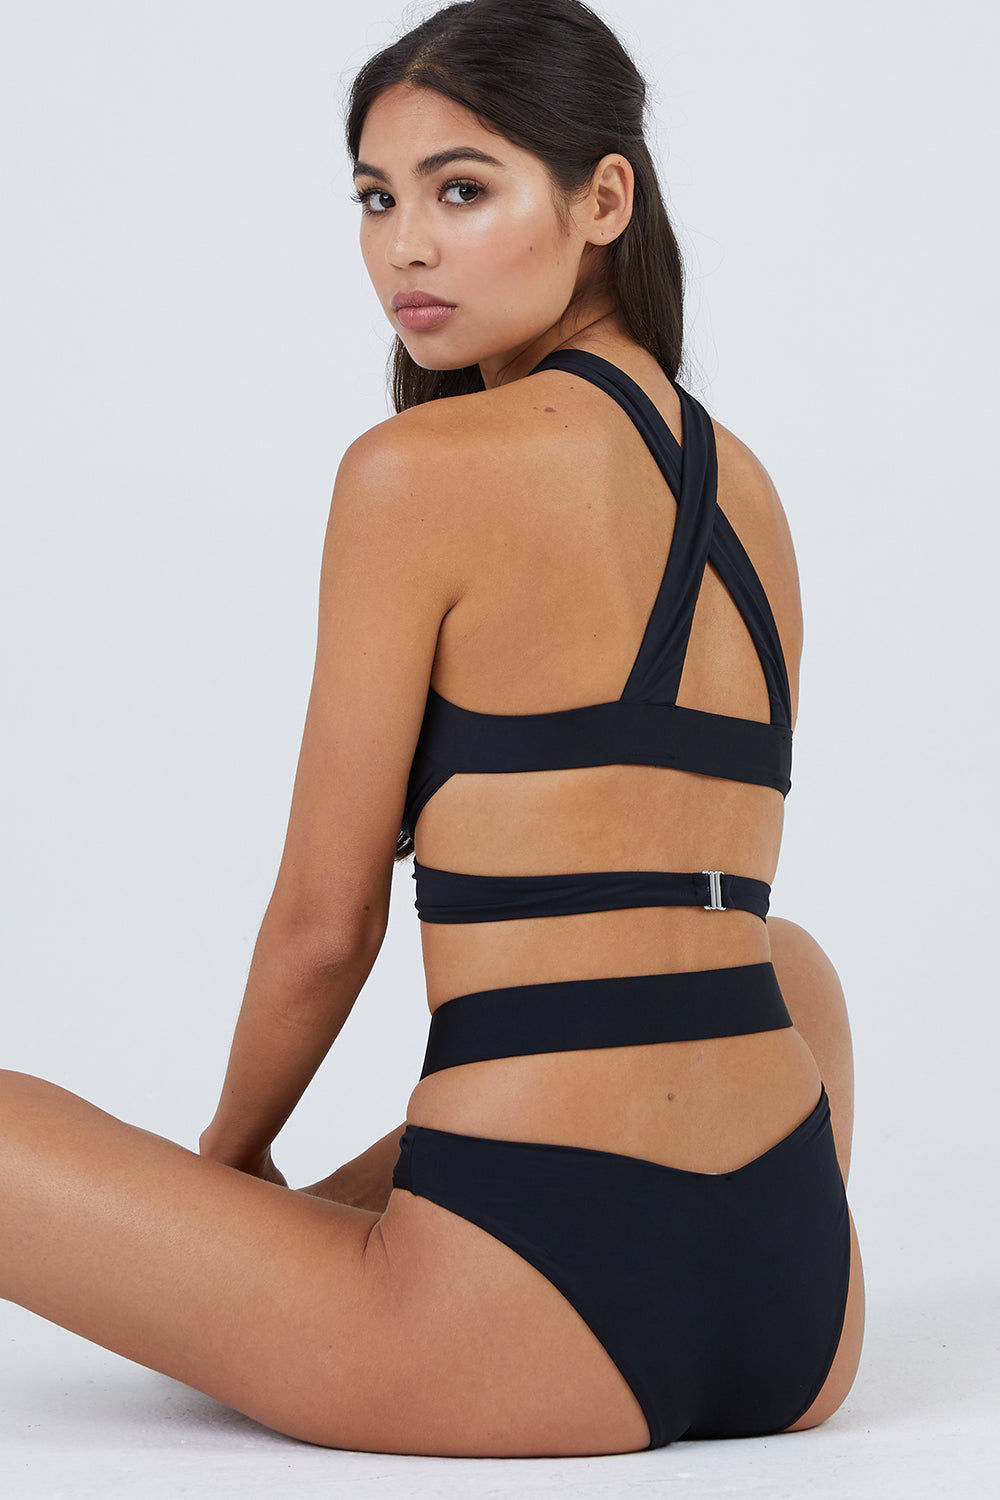 MONICA HANSEN BEACHWEAR Endless Summer Wrap Around Bikini Bottom - Black Bikini Bottom | Black| Monica Hansen Beachwear Endless Summer Wrap Around Bikini Bottom - Black. Forms a diamond cut out in front Criss cross straps  High cut leg  Cheeky coverage  Double fabric on the inside instead of lining Italian fabric 85% Nylon 15% Elastane Manufactured in Italy Hand wash cold.  Dry Flat Back View